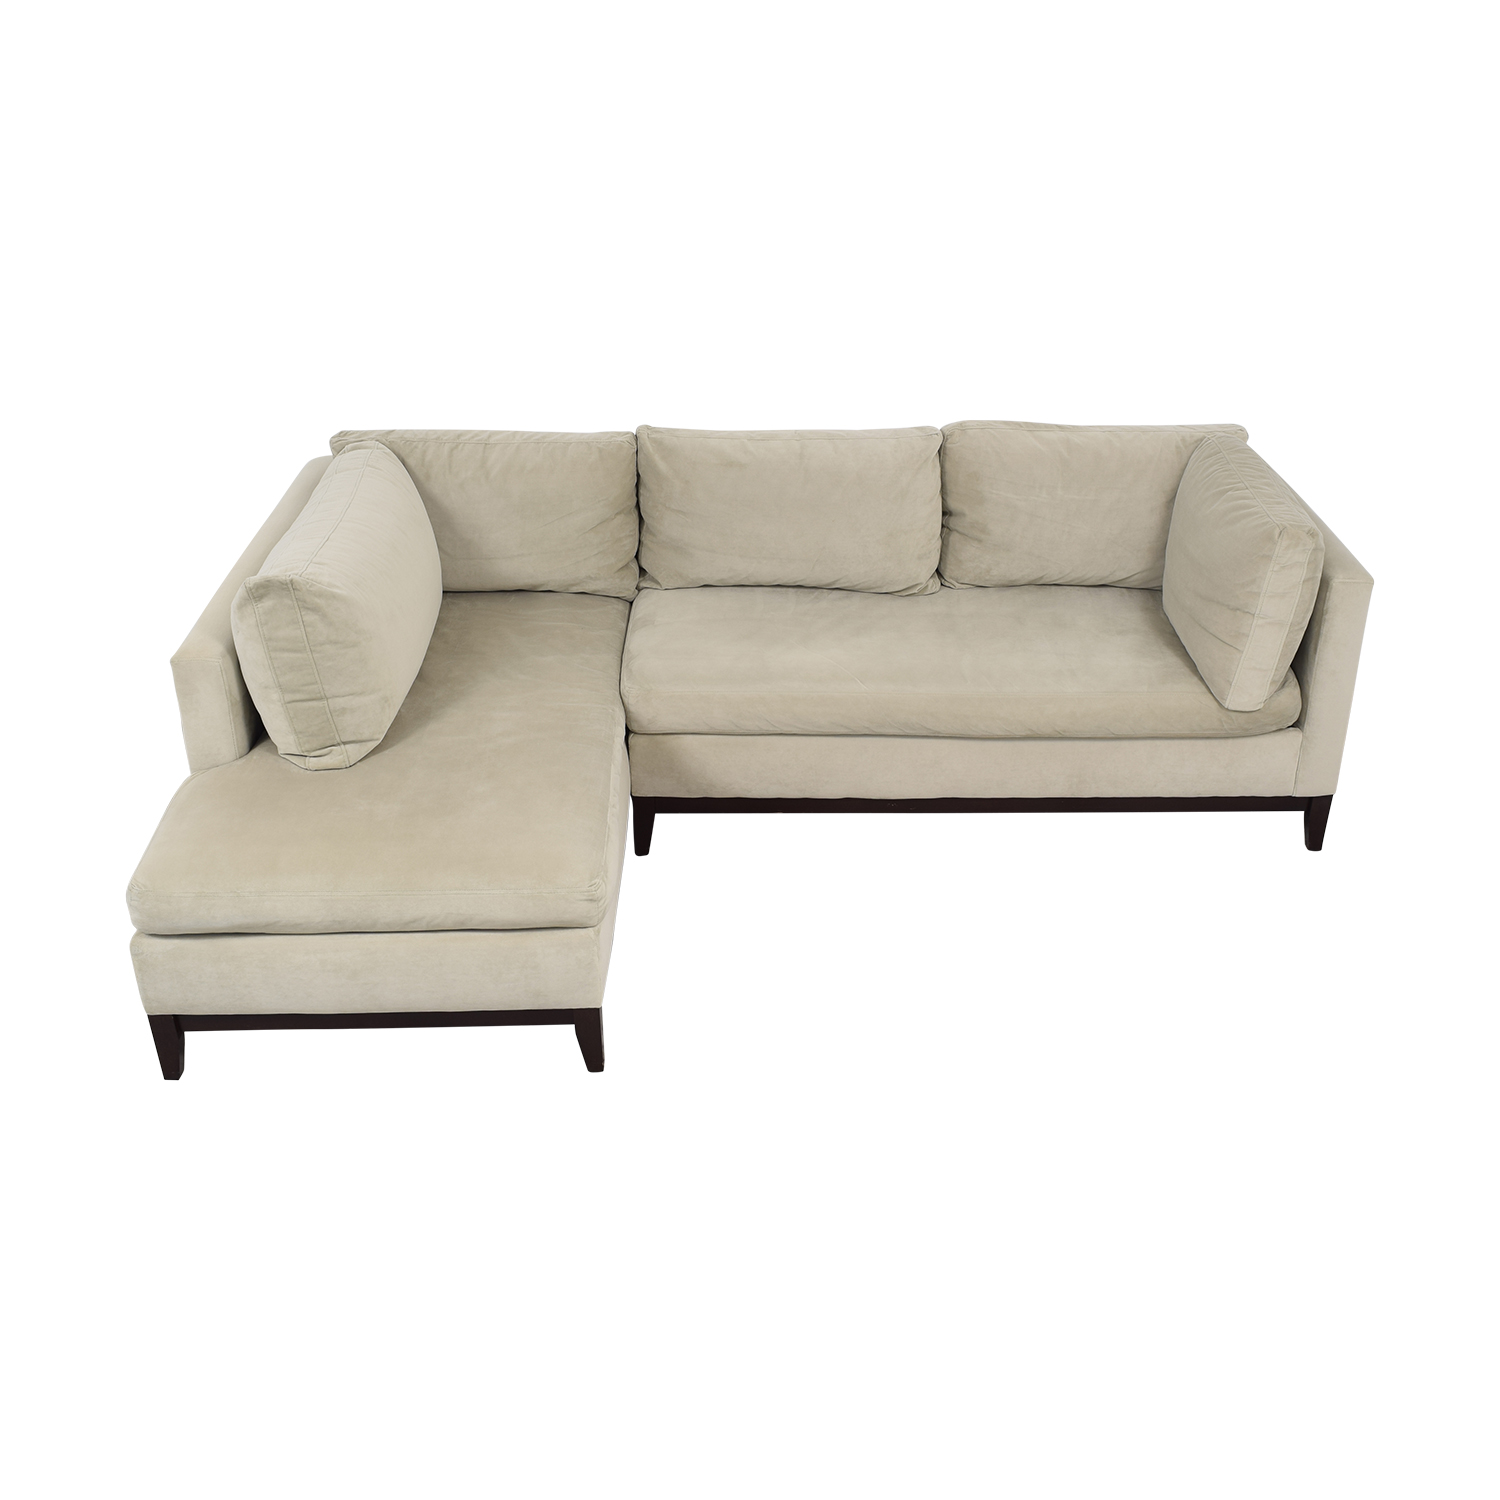 West Elm West Elm Sectional Sofa with Chaise ct